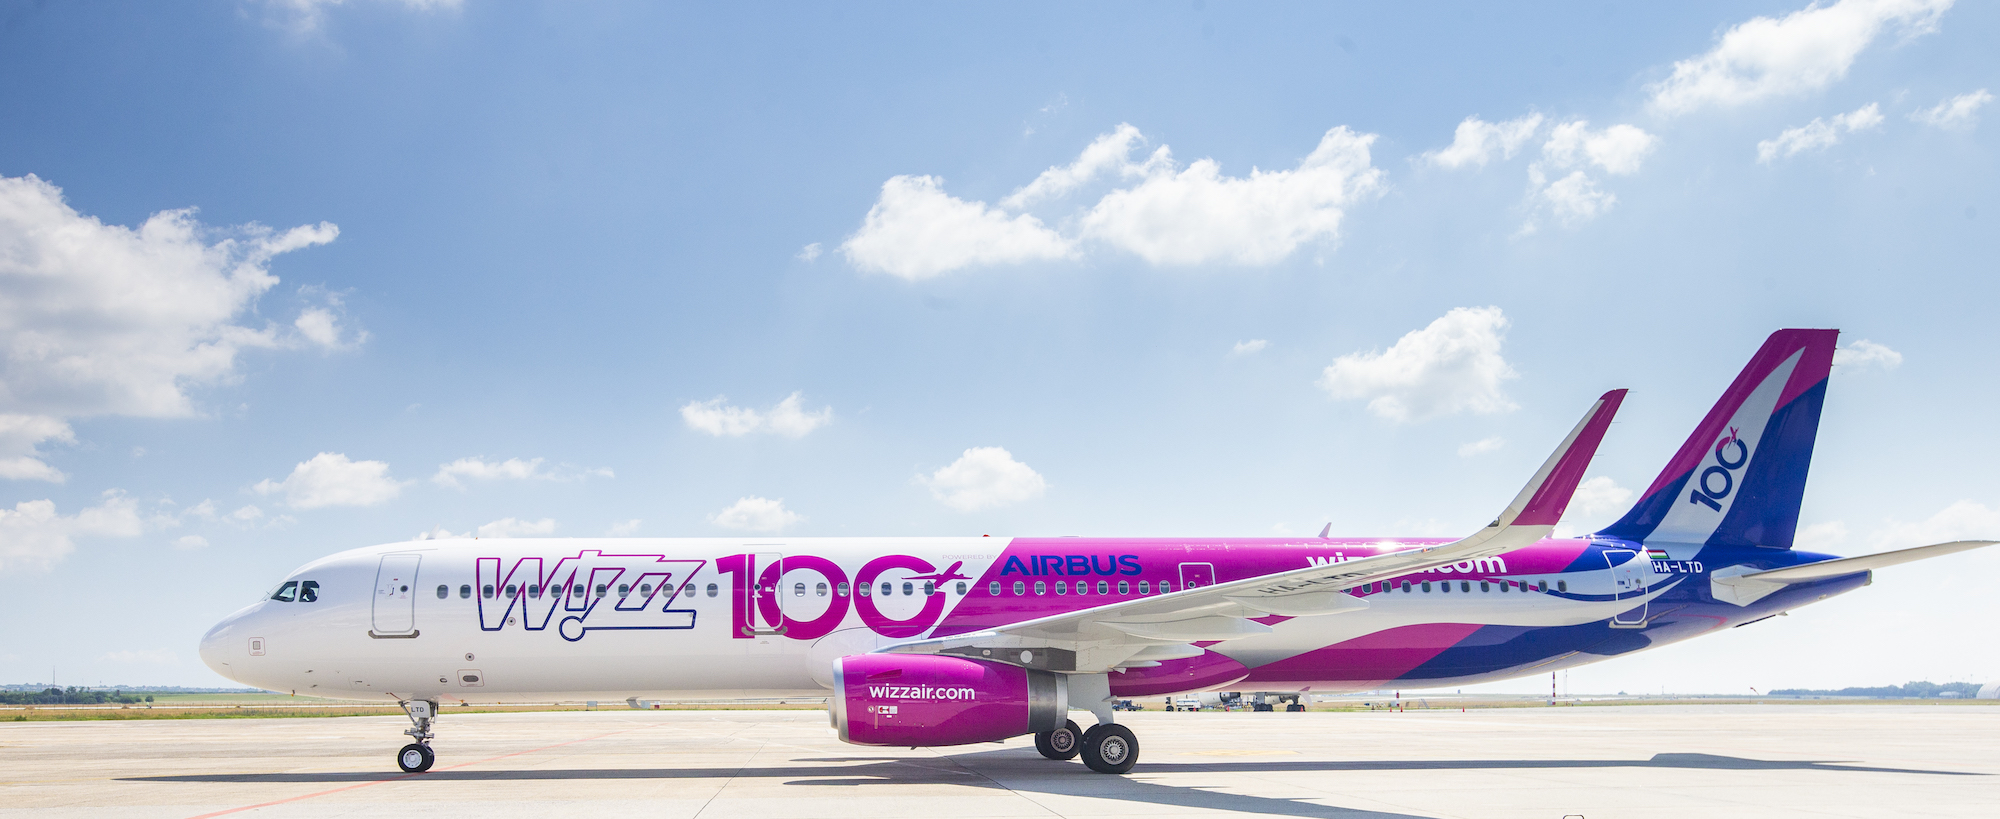 VFM airline Wizz Air adds three new routes from Abu Dhabi to Belgrade, Sohag and Luxor